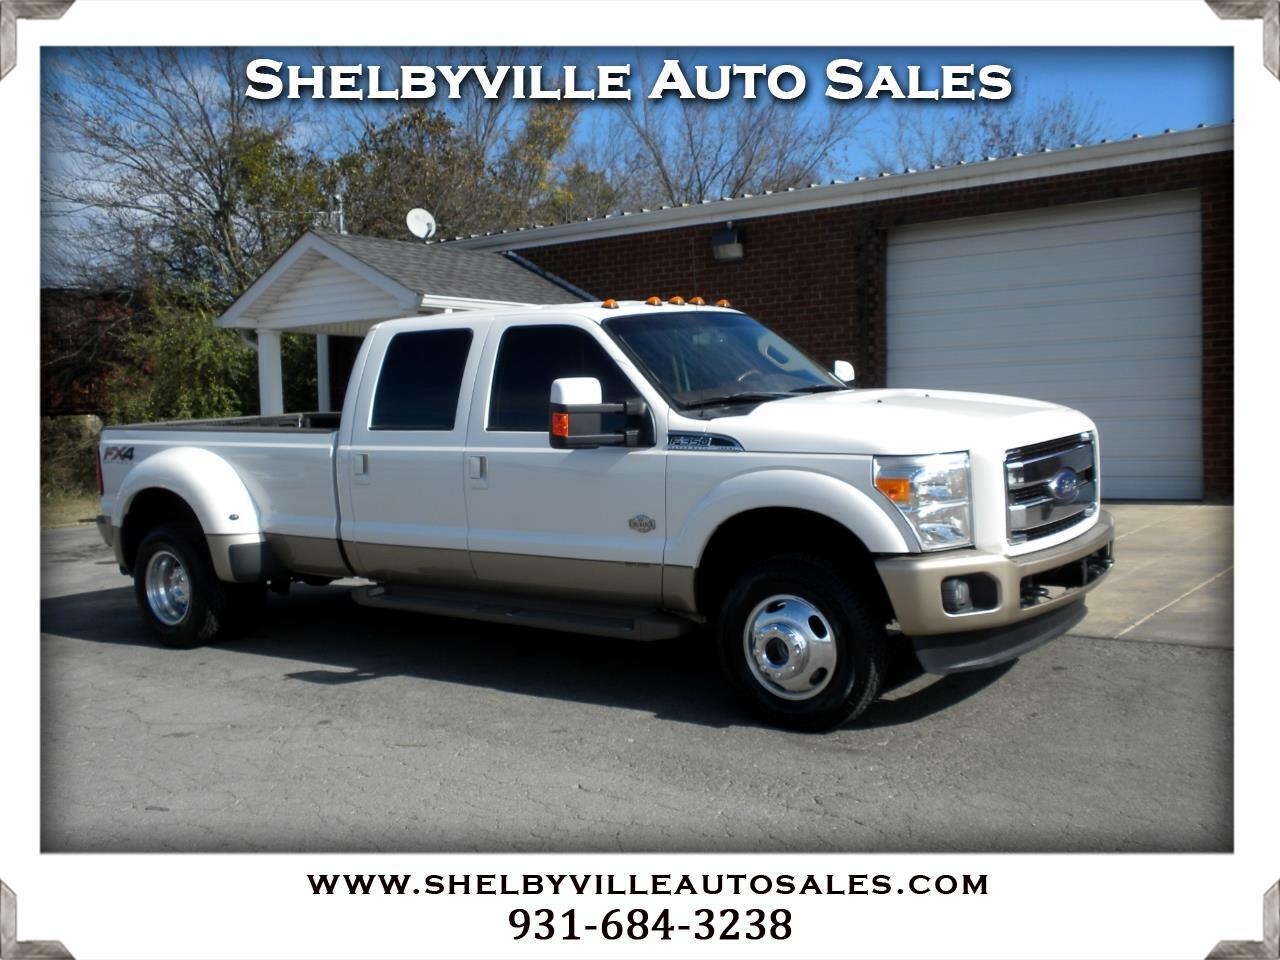 2014 Ford Super Duty F-350 DRW 4X4 Crew Cab King Ranch